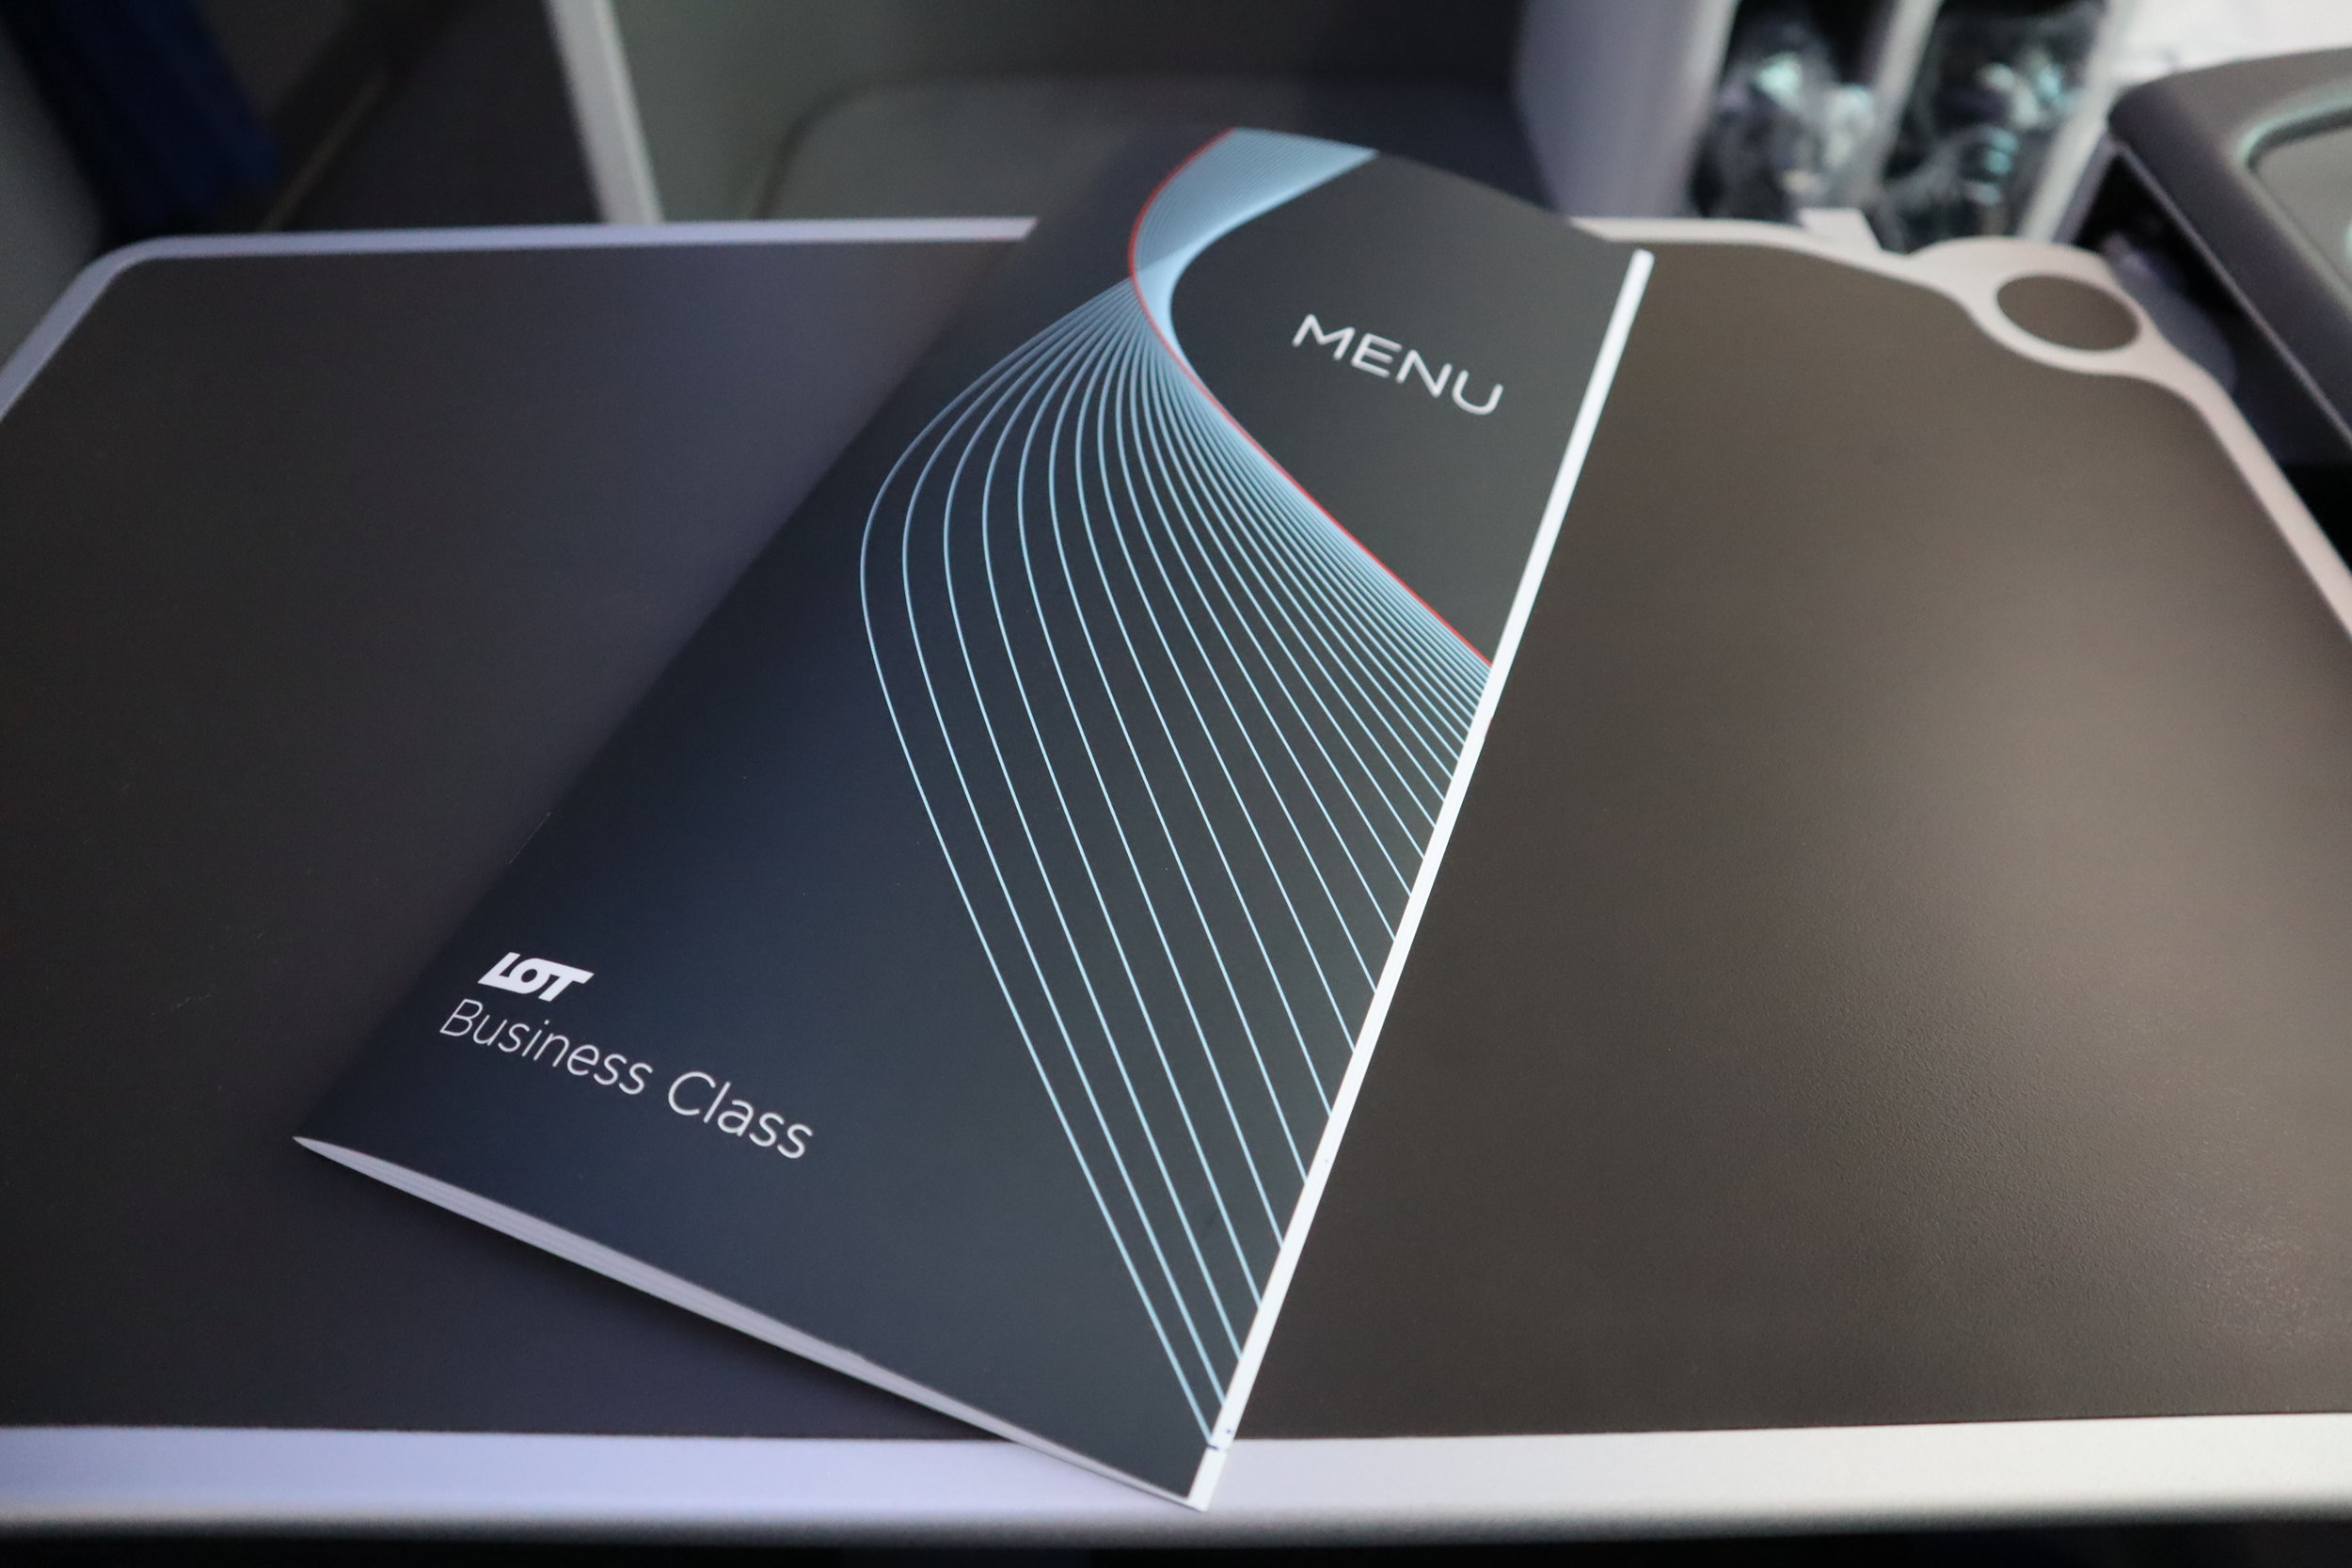 LOT Polish Airlines business class – Menu